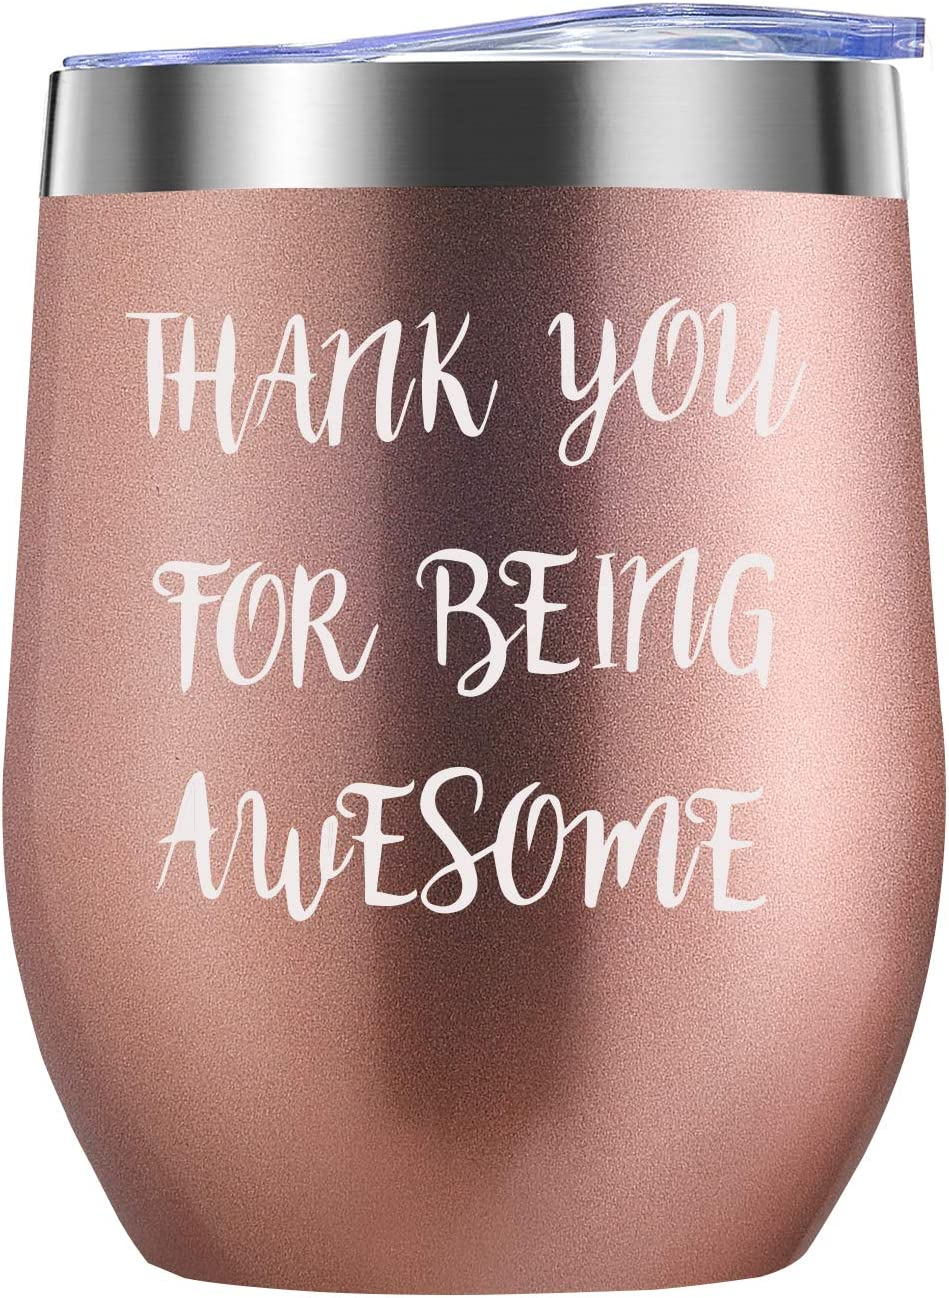 Thank You Gifts for Women 12oz Wine Tumbler- Funny Congratulations,Graduation,Birthday, Appreciation, Friendship, Valentines Day Gifts for Her, Wife, Girlfriend, Mom, Coworker, Employee, Friends